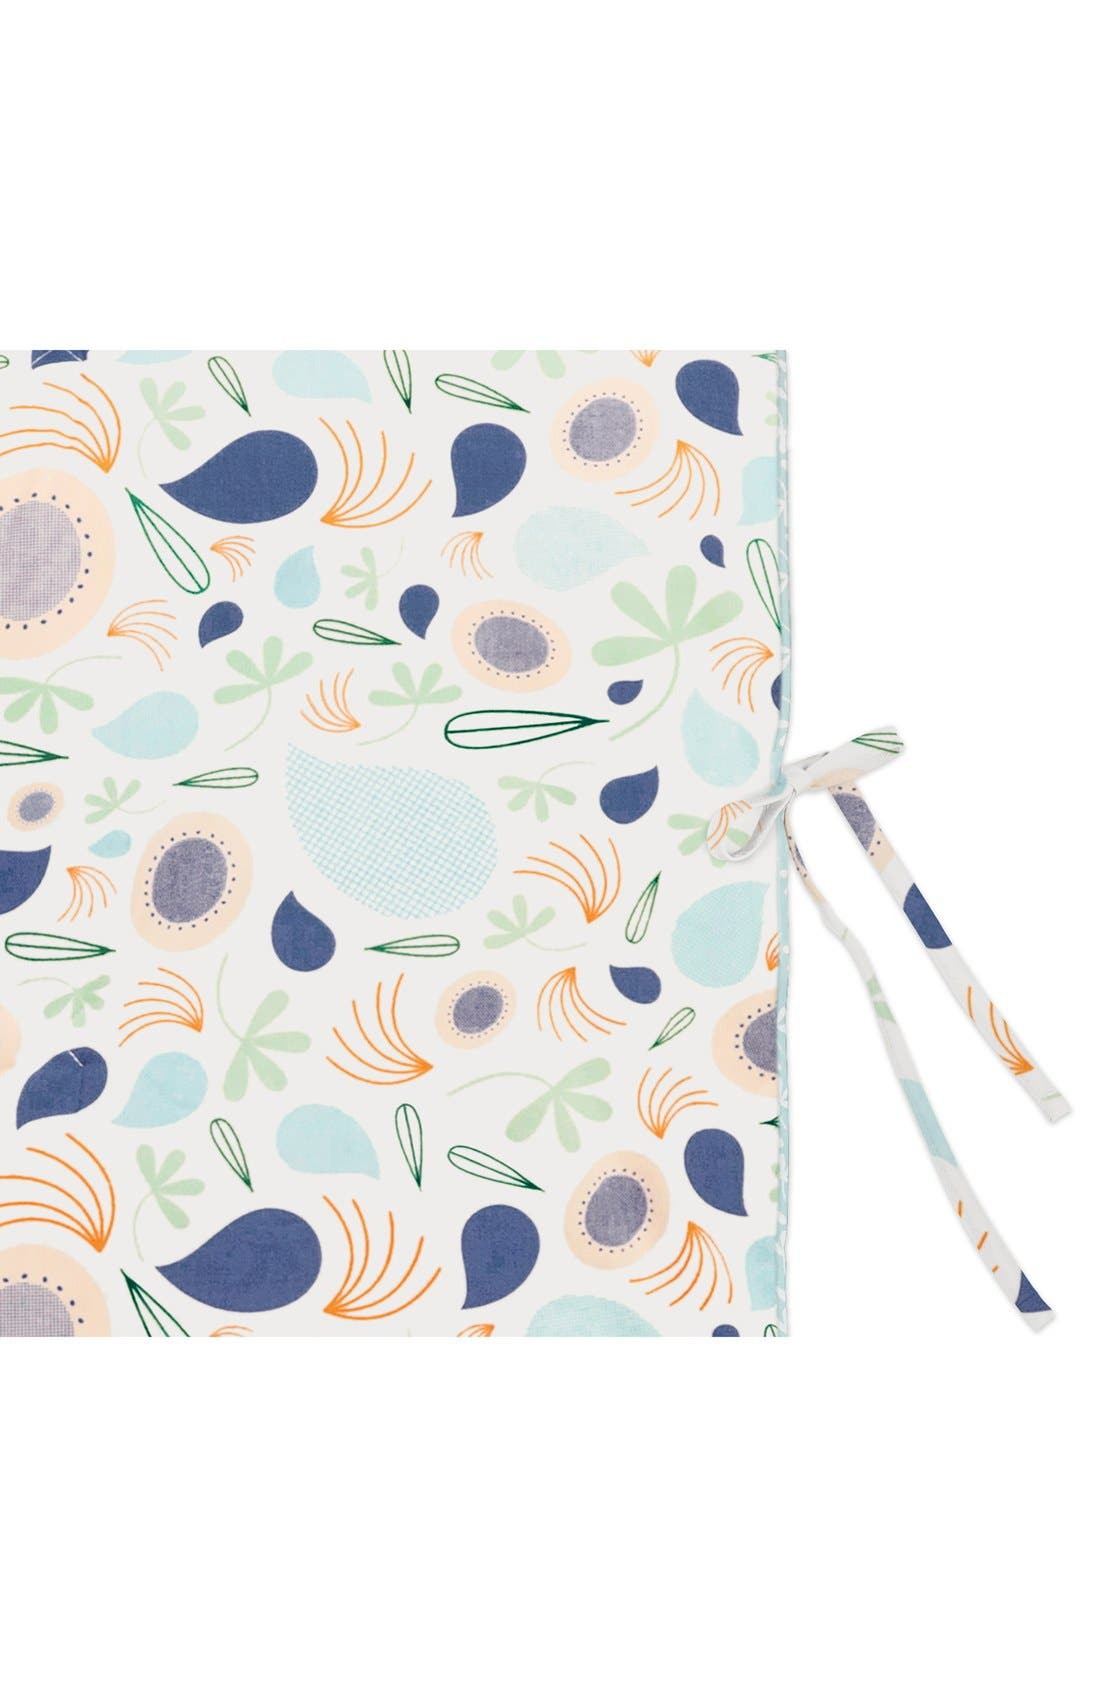 'Flora' Mini Crib Sheet, Changing Pad Cover, Stroller Blanket & Wall Decals,                             Alternate thumbnail 6, color,                             400